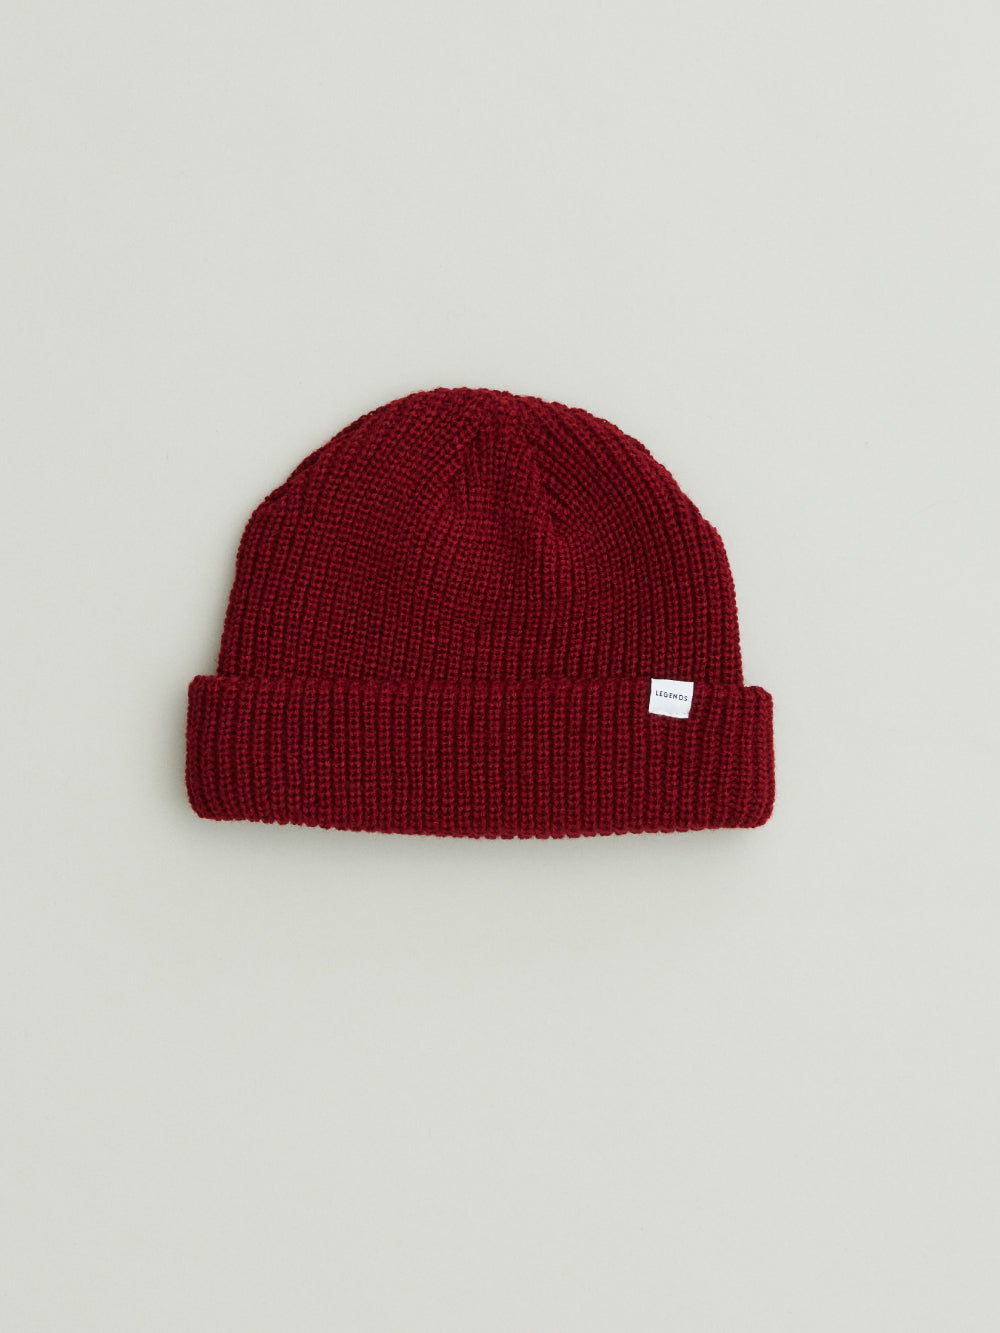 Northern Beanie | Redwine